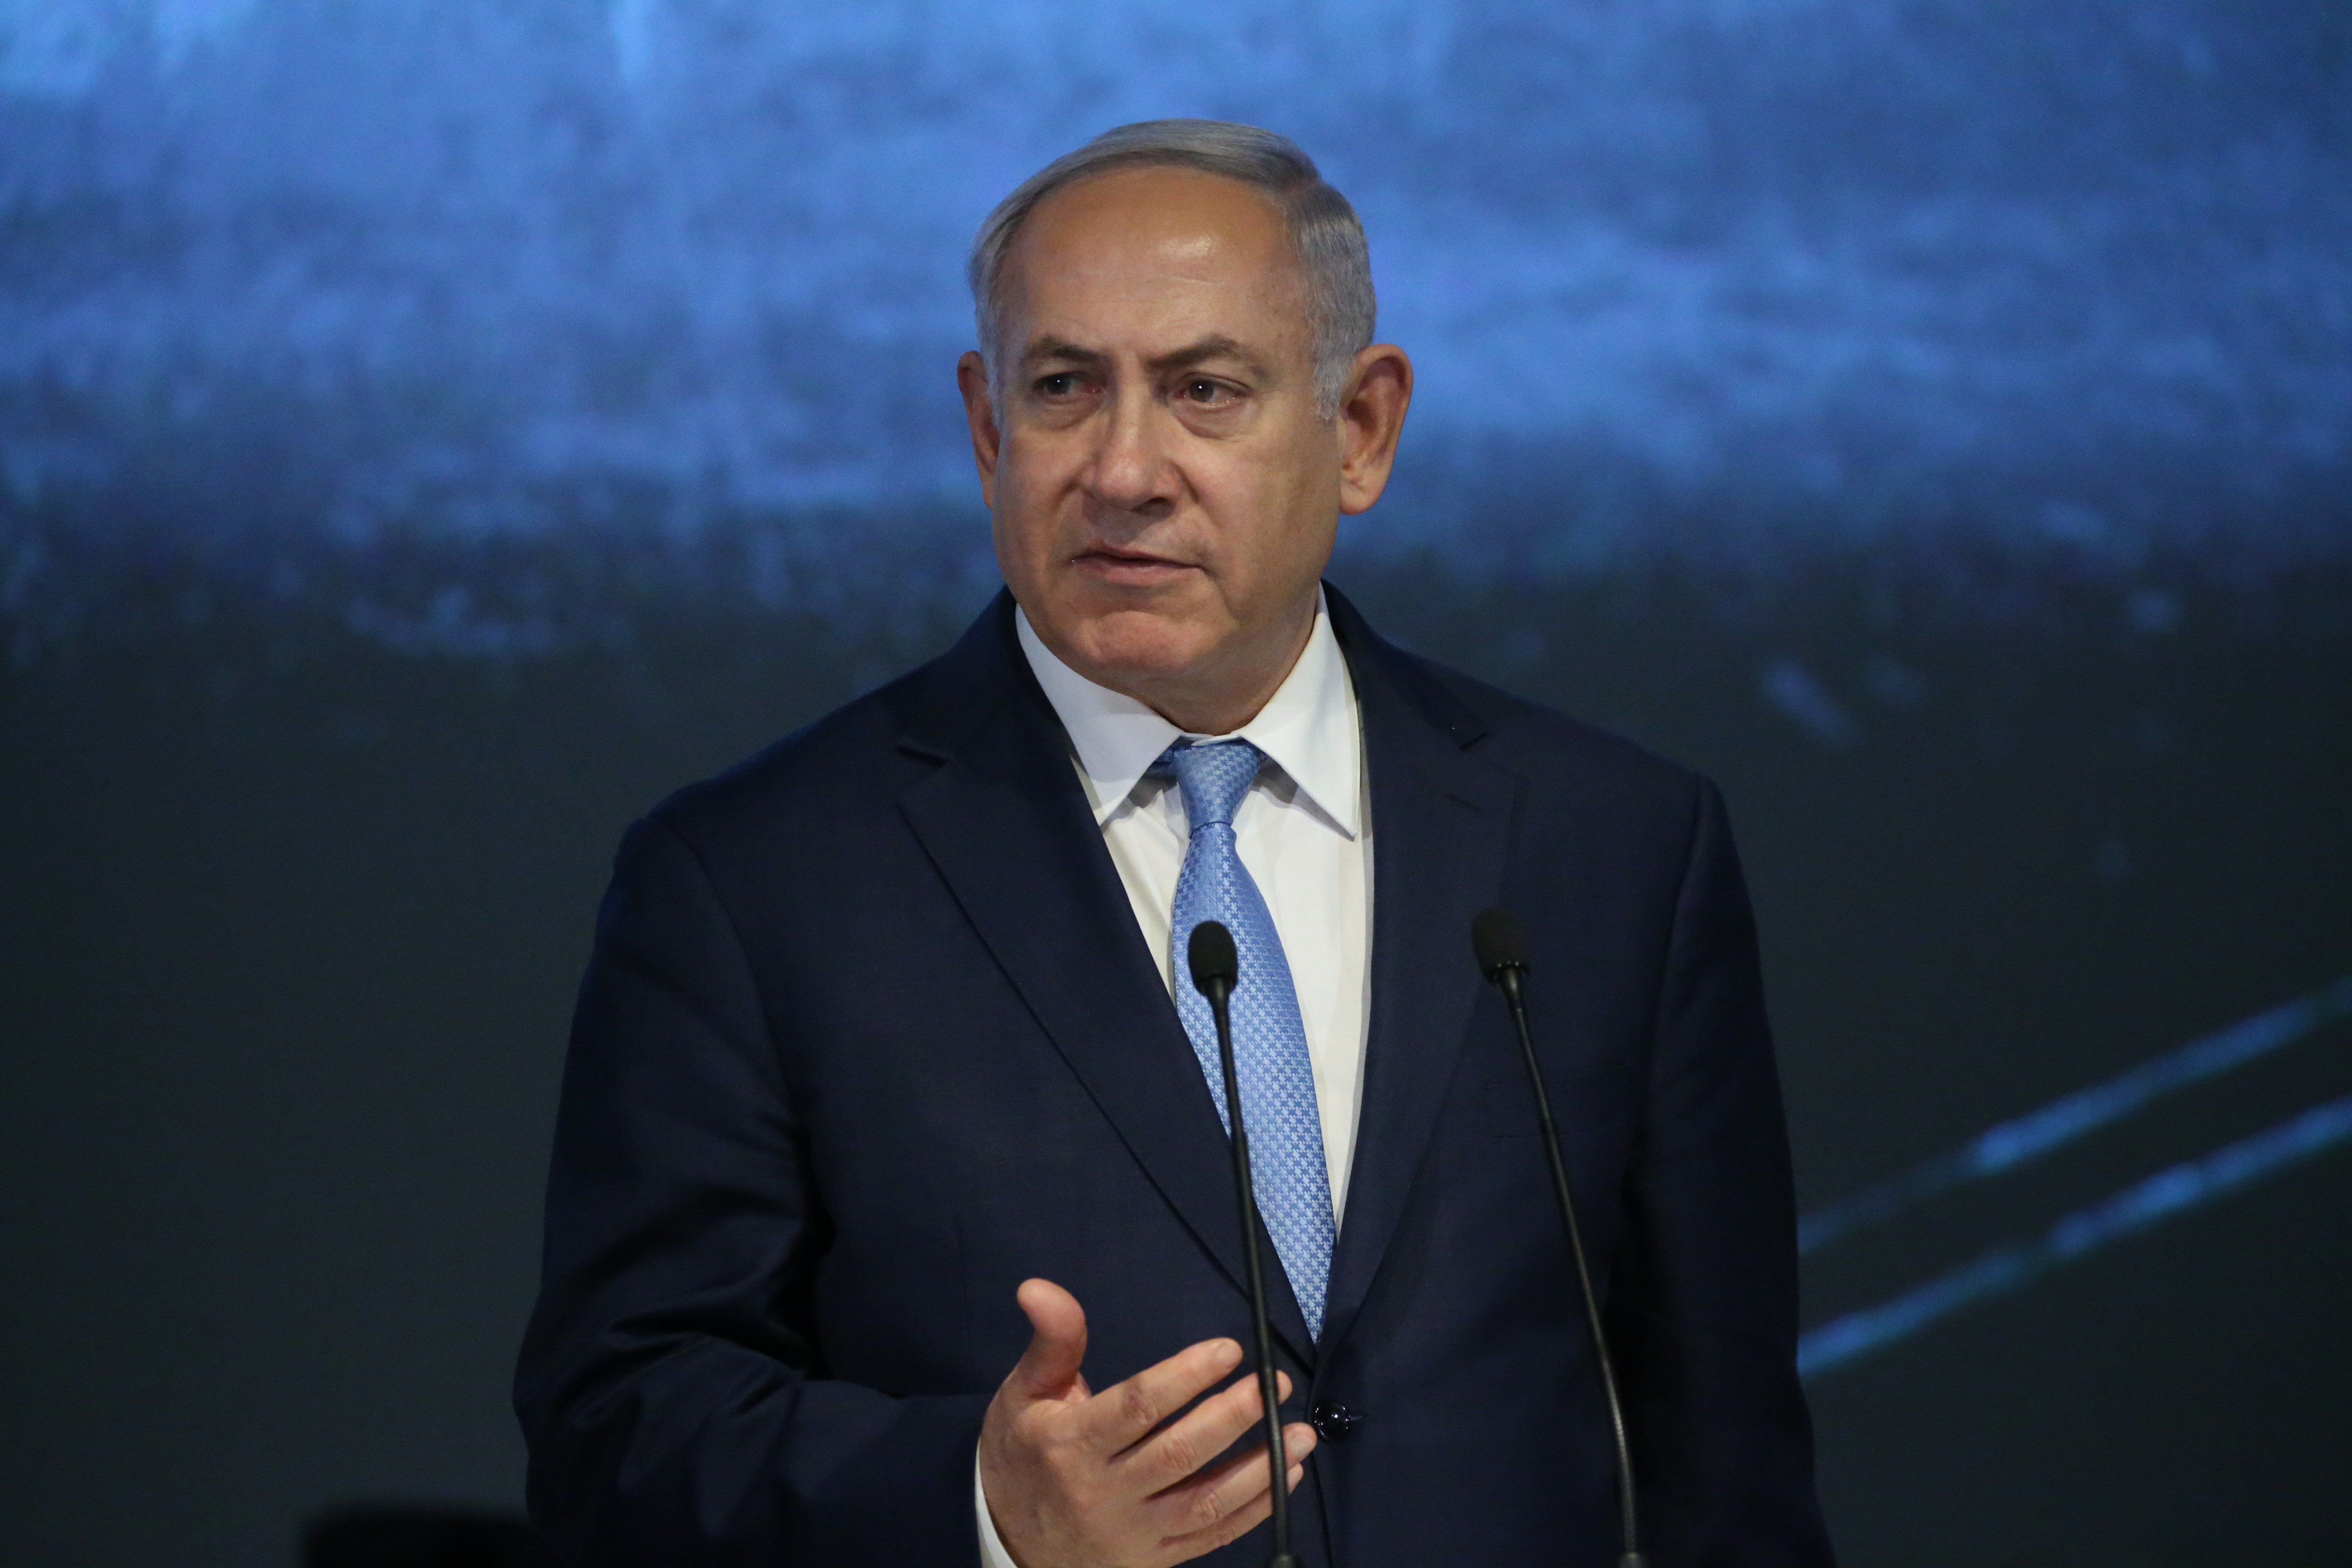 Israeli Prime Minister Benjamin Netanyahu speaks during a meeting at Moscow's Jewish Center on Jan. 29, 2018.